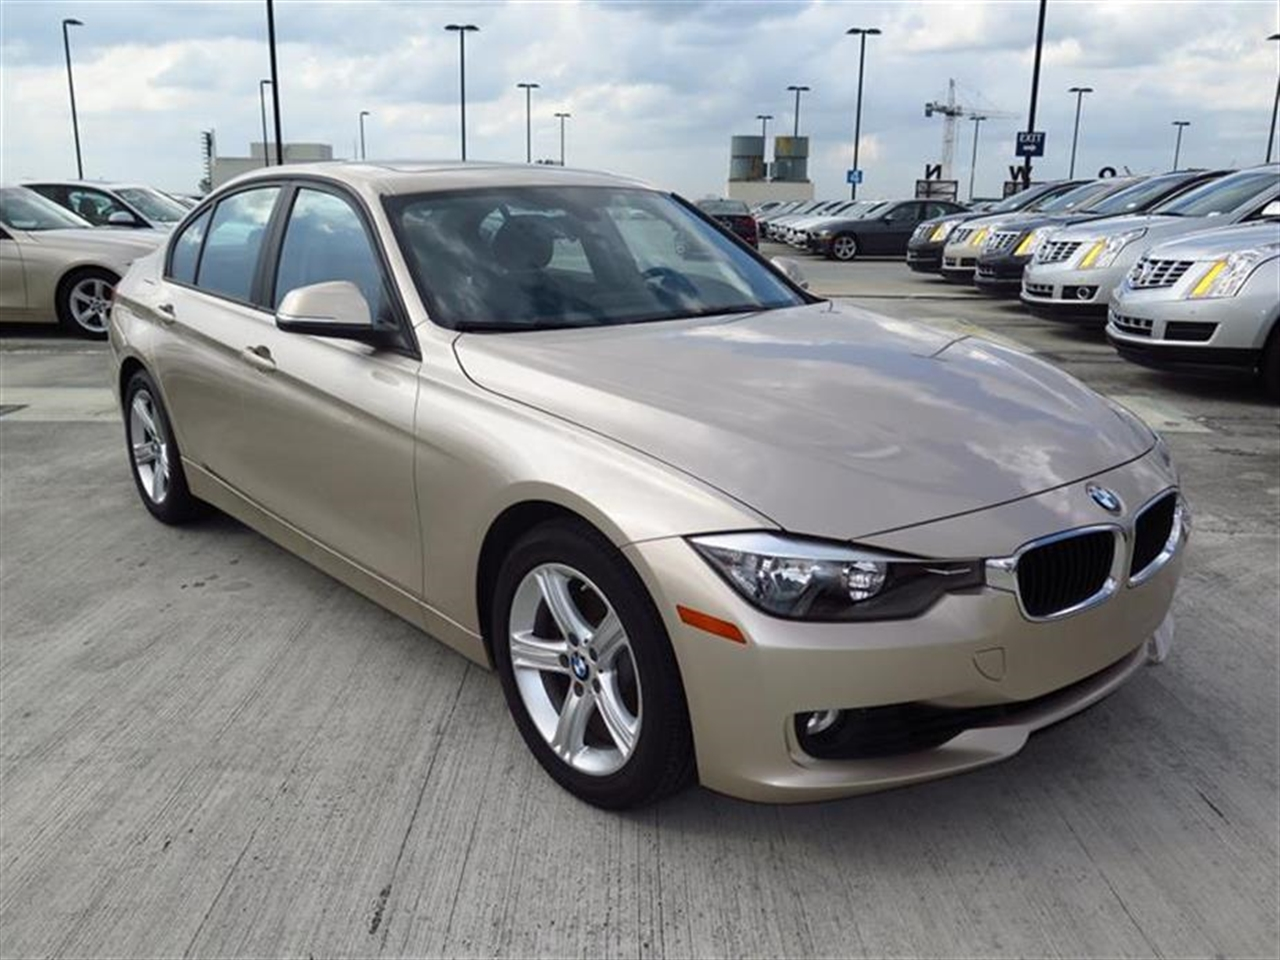 2013 BMW 3 SERIES 4dr Sdn 328i RWD 18452 miles 2-way headrests with active head restraints 3-spo